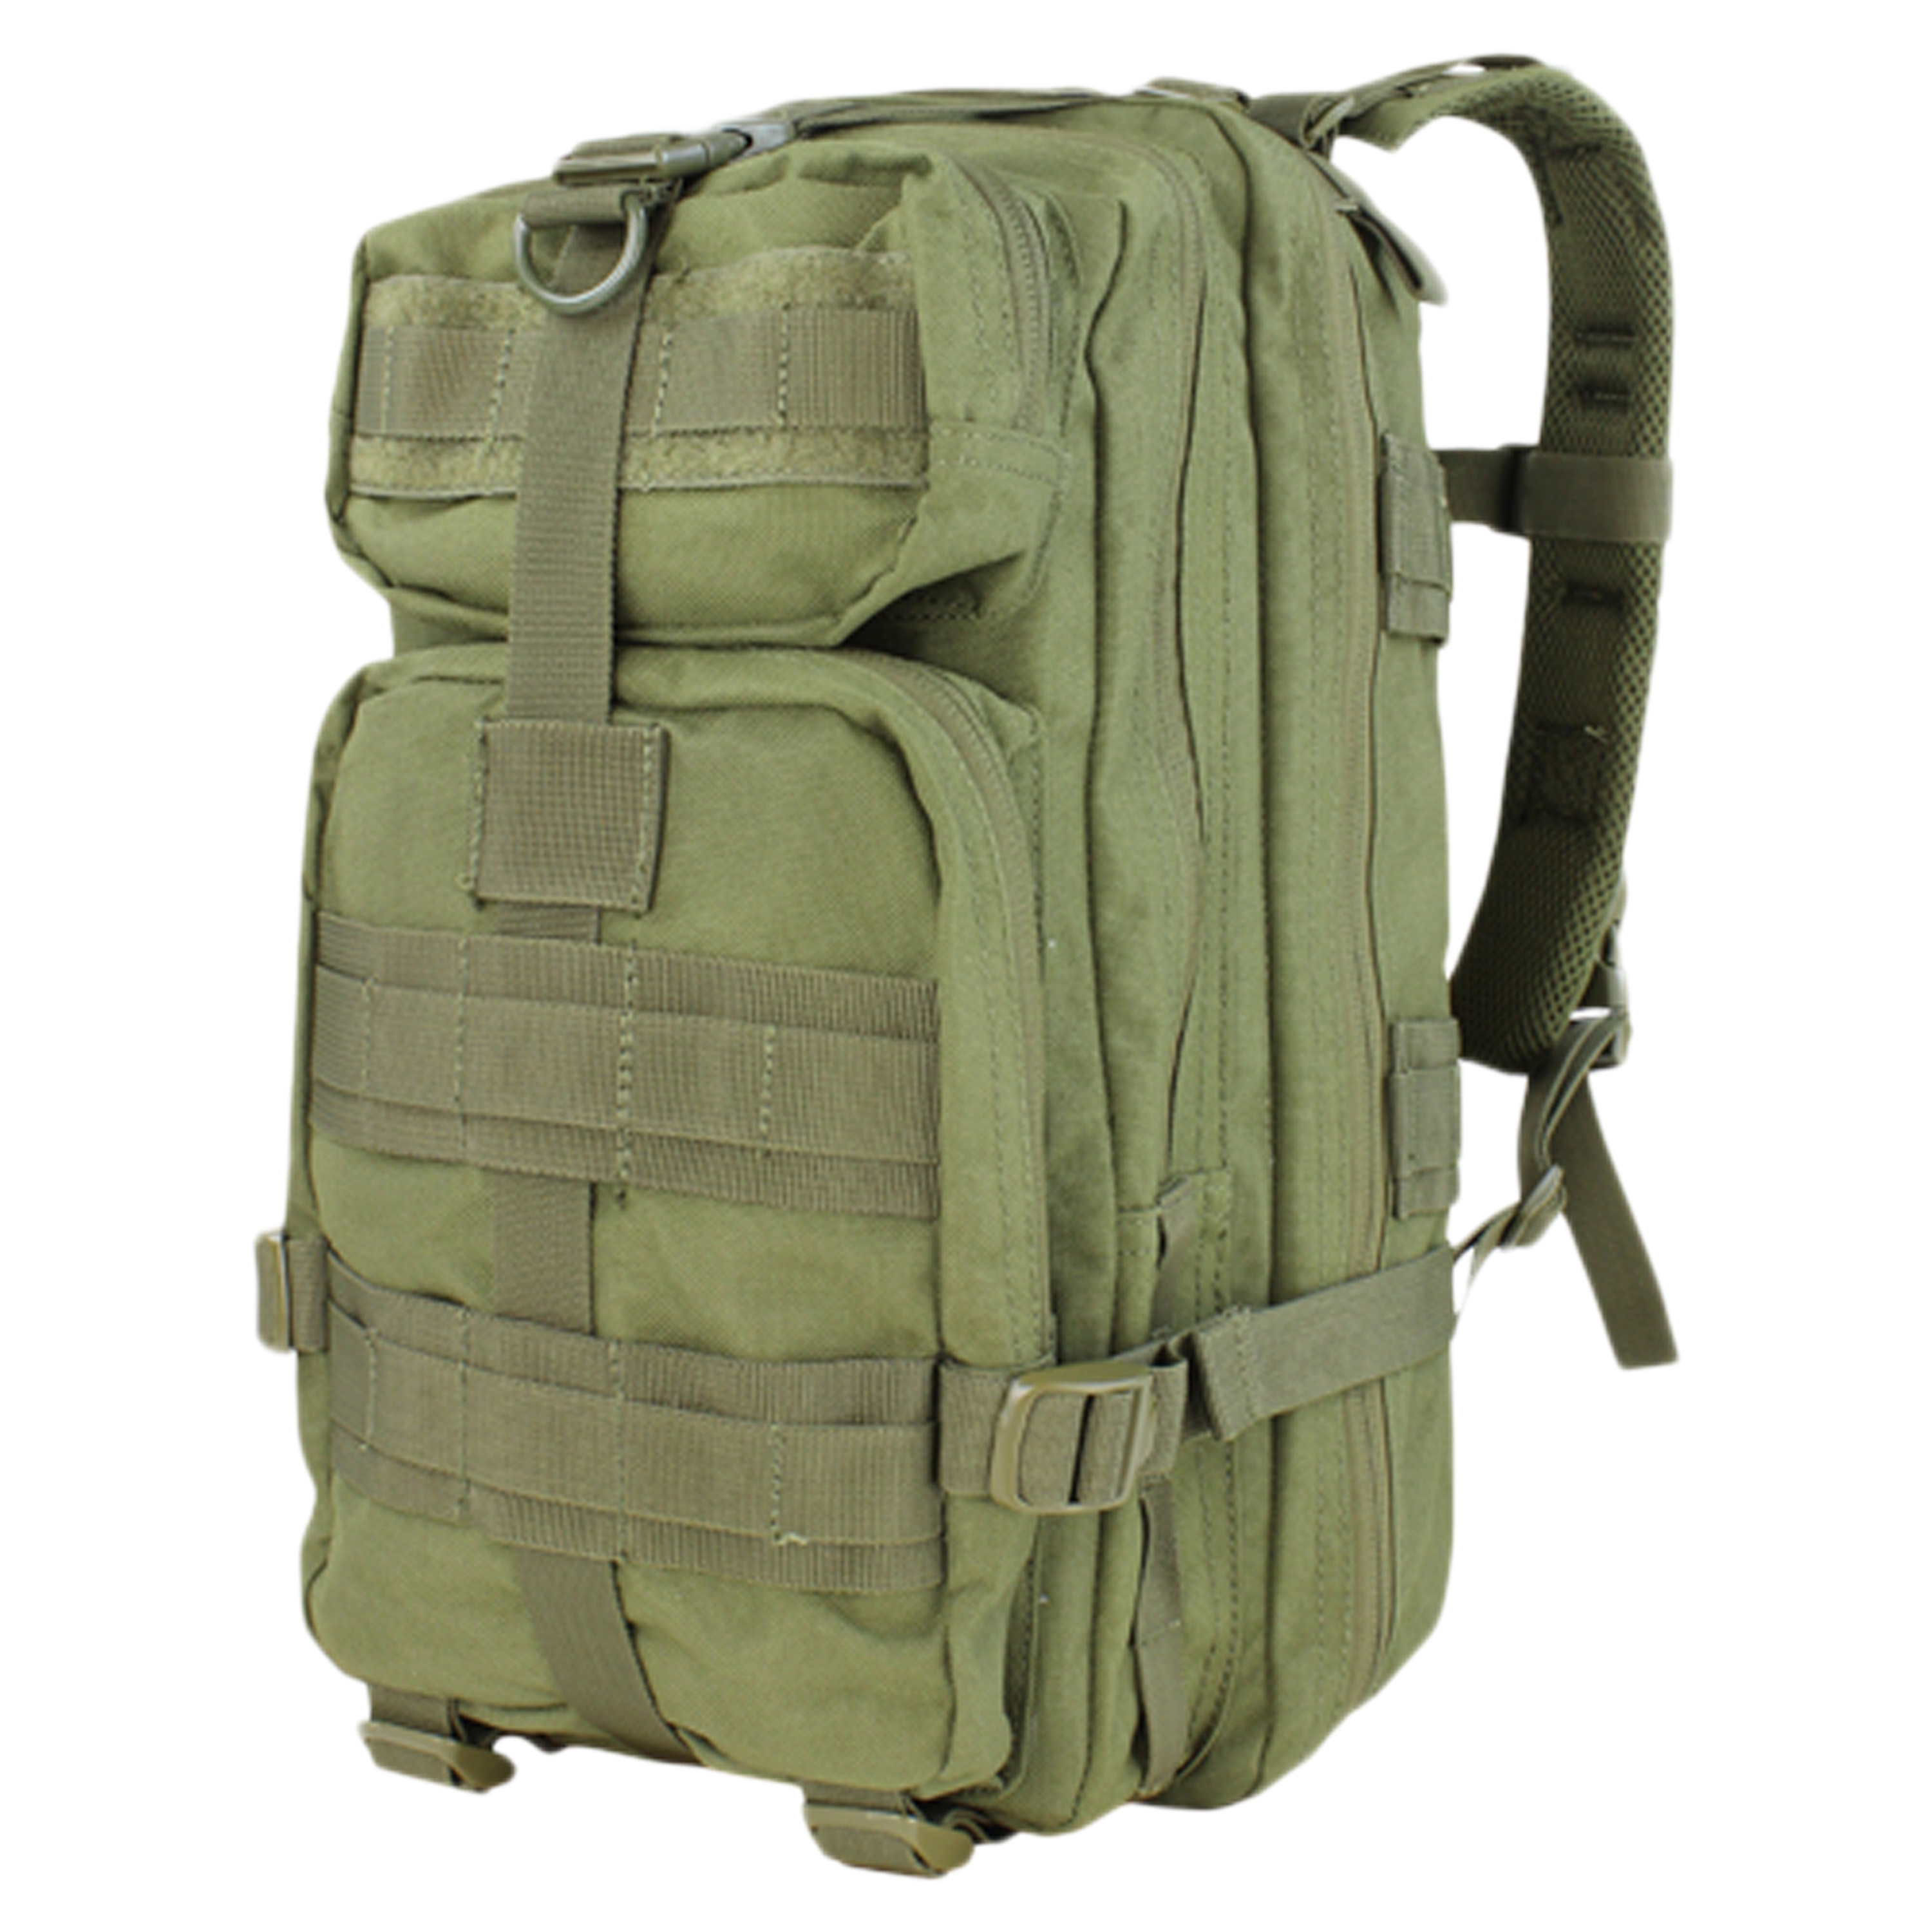 Condor Backpack Assault Pack Compact olive